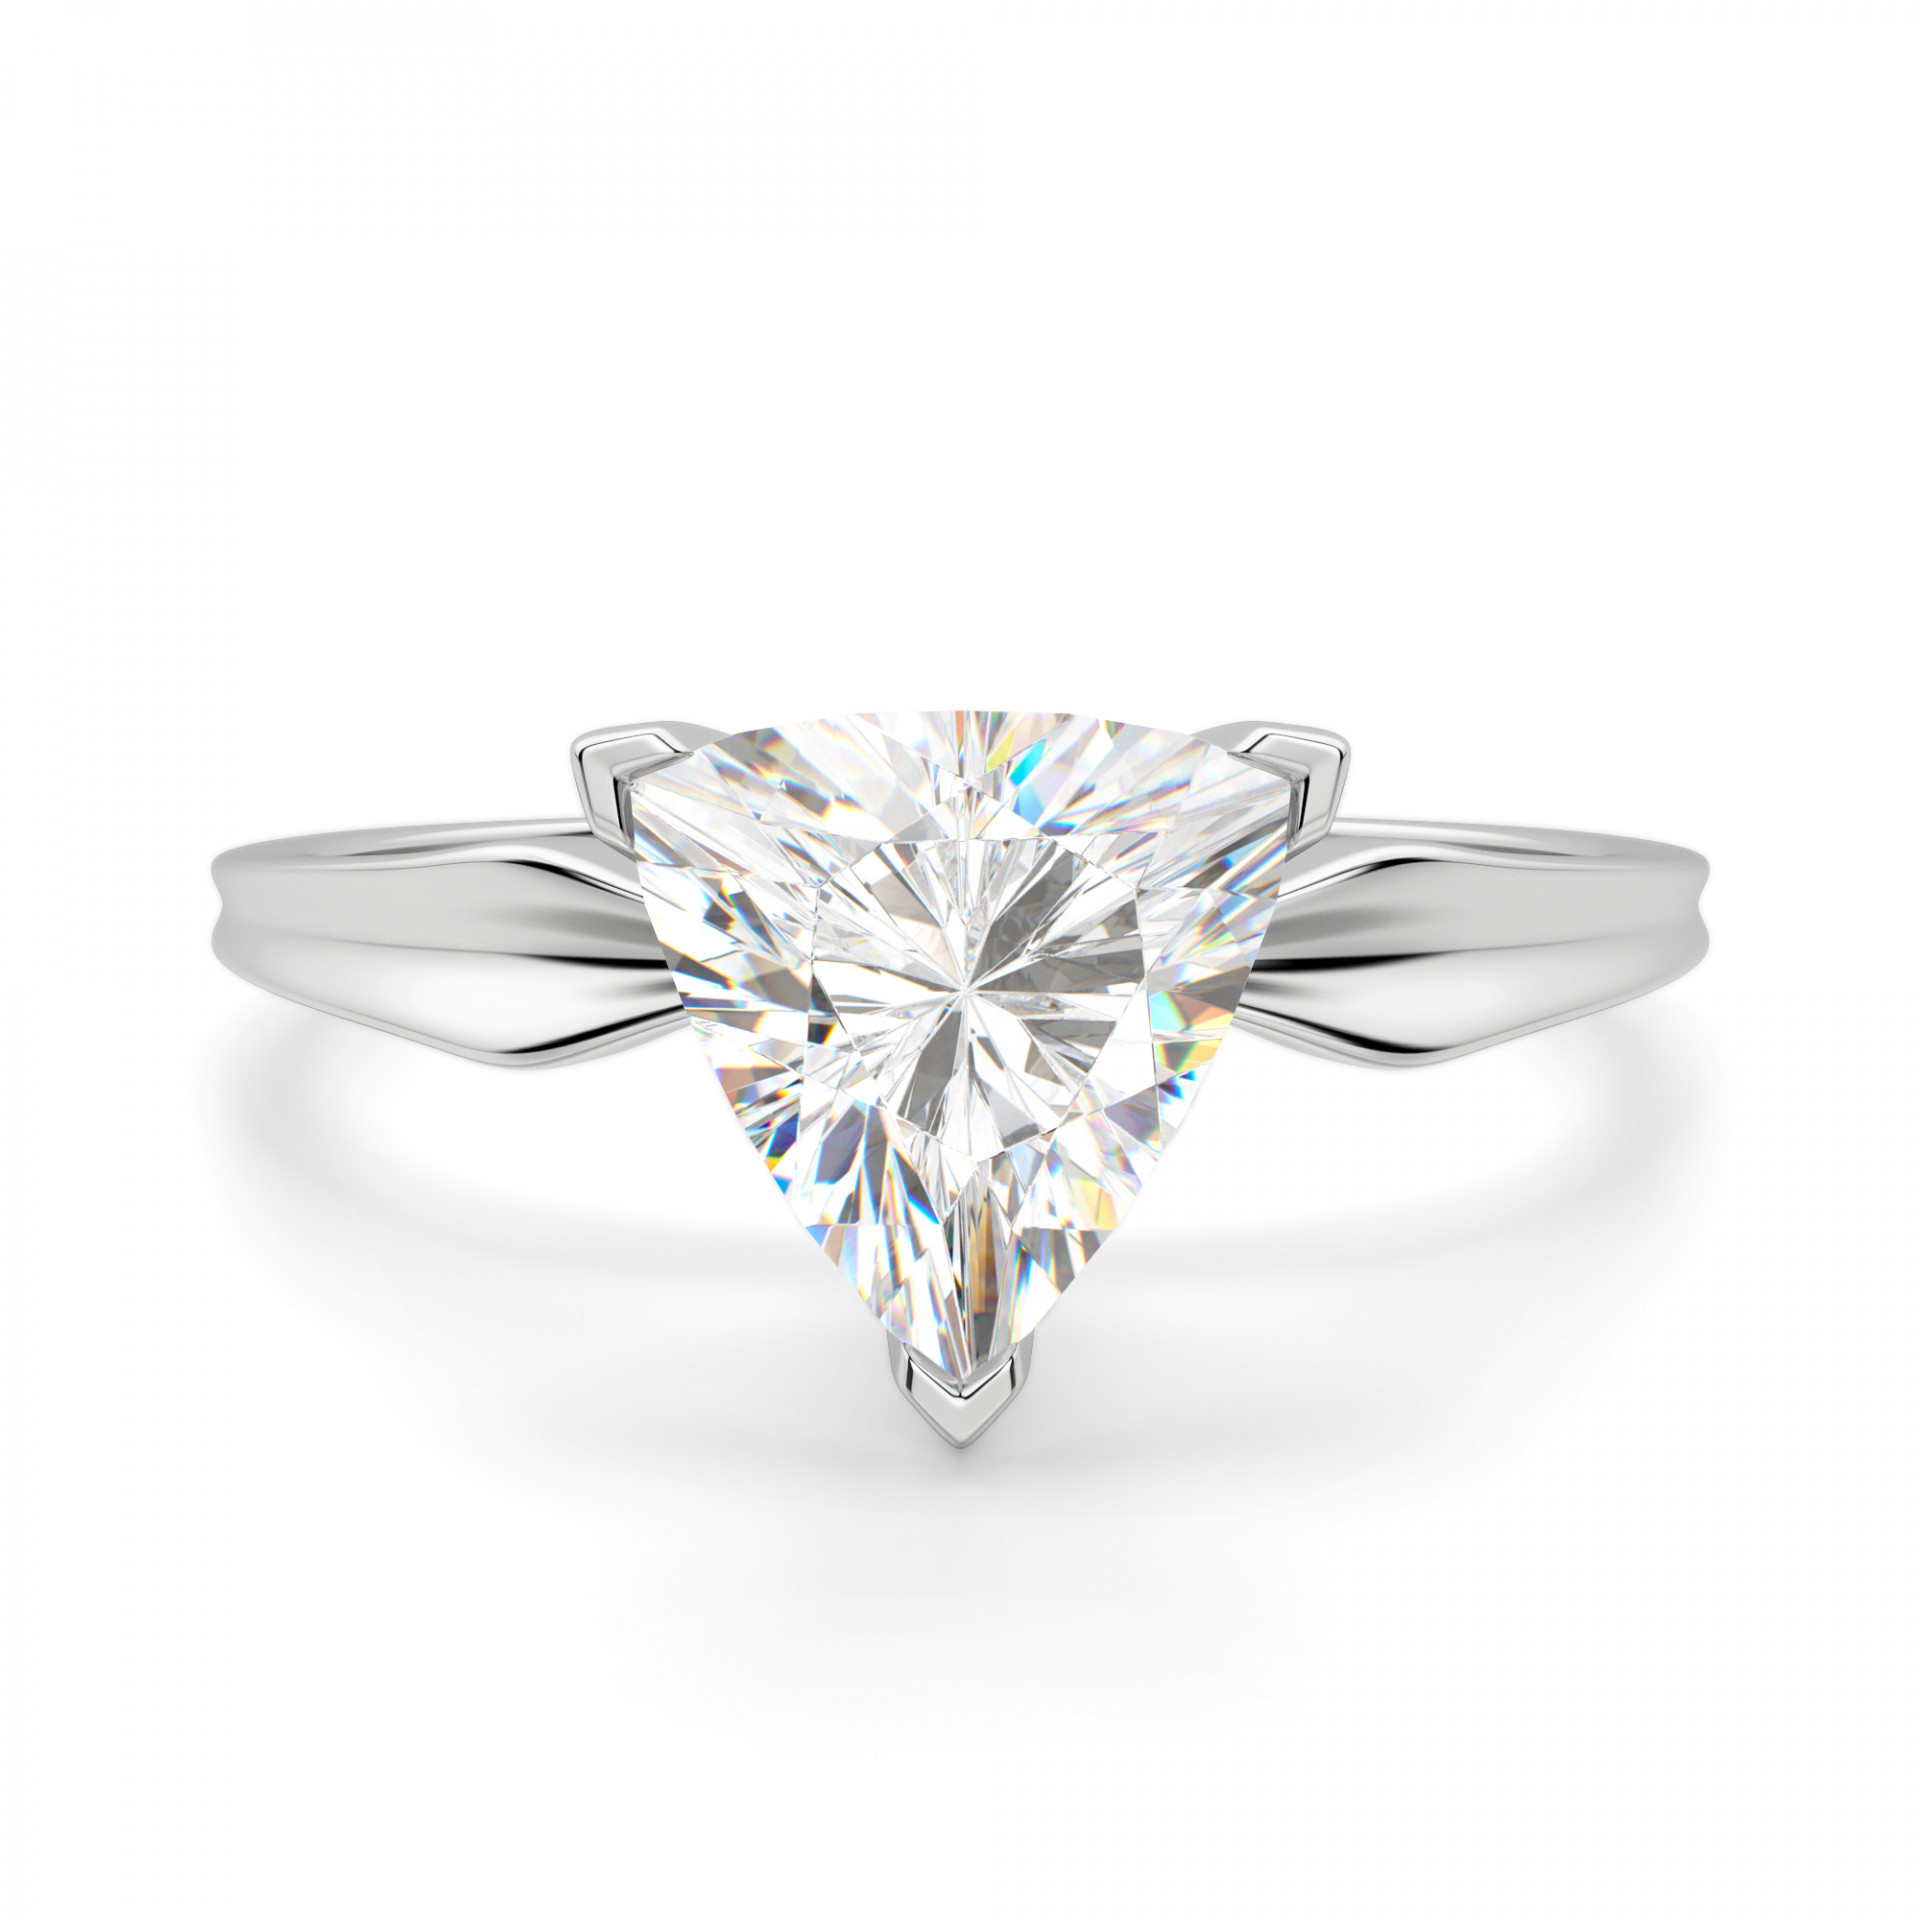 1927123f6a003 Soliloquy Trillion Cut Engagement Ring